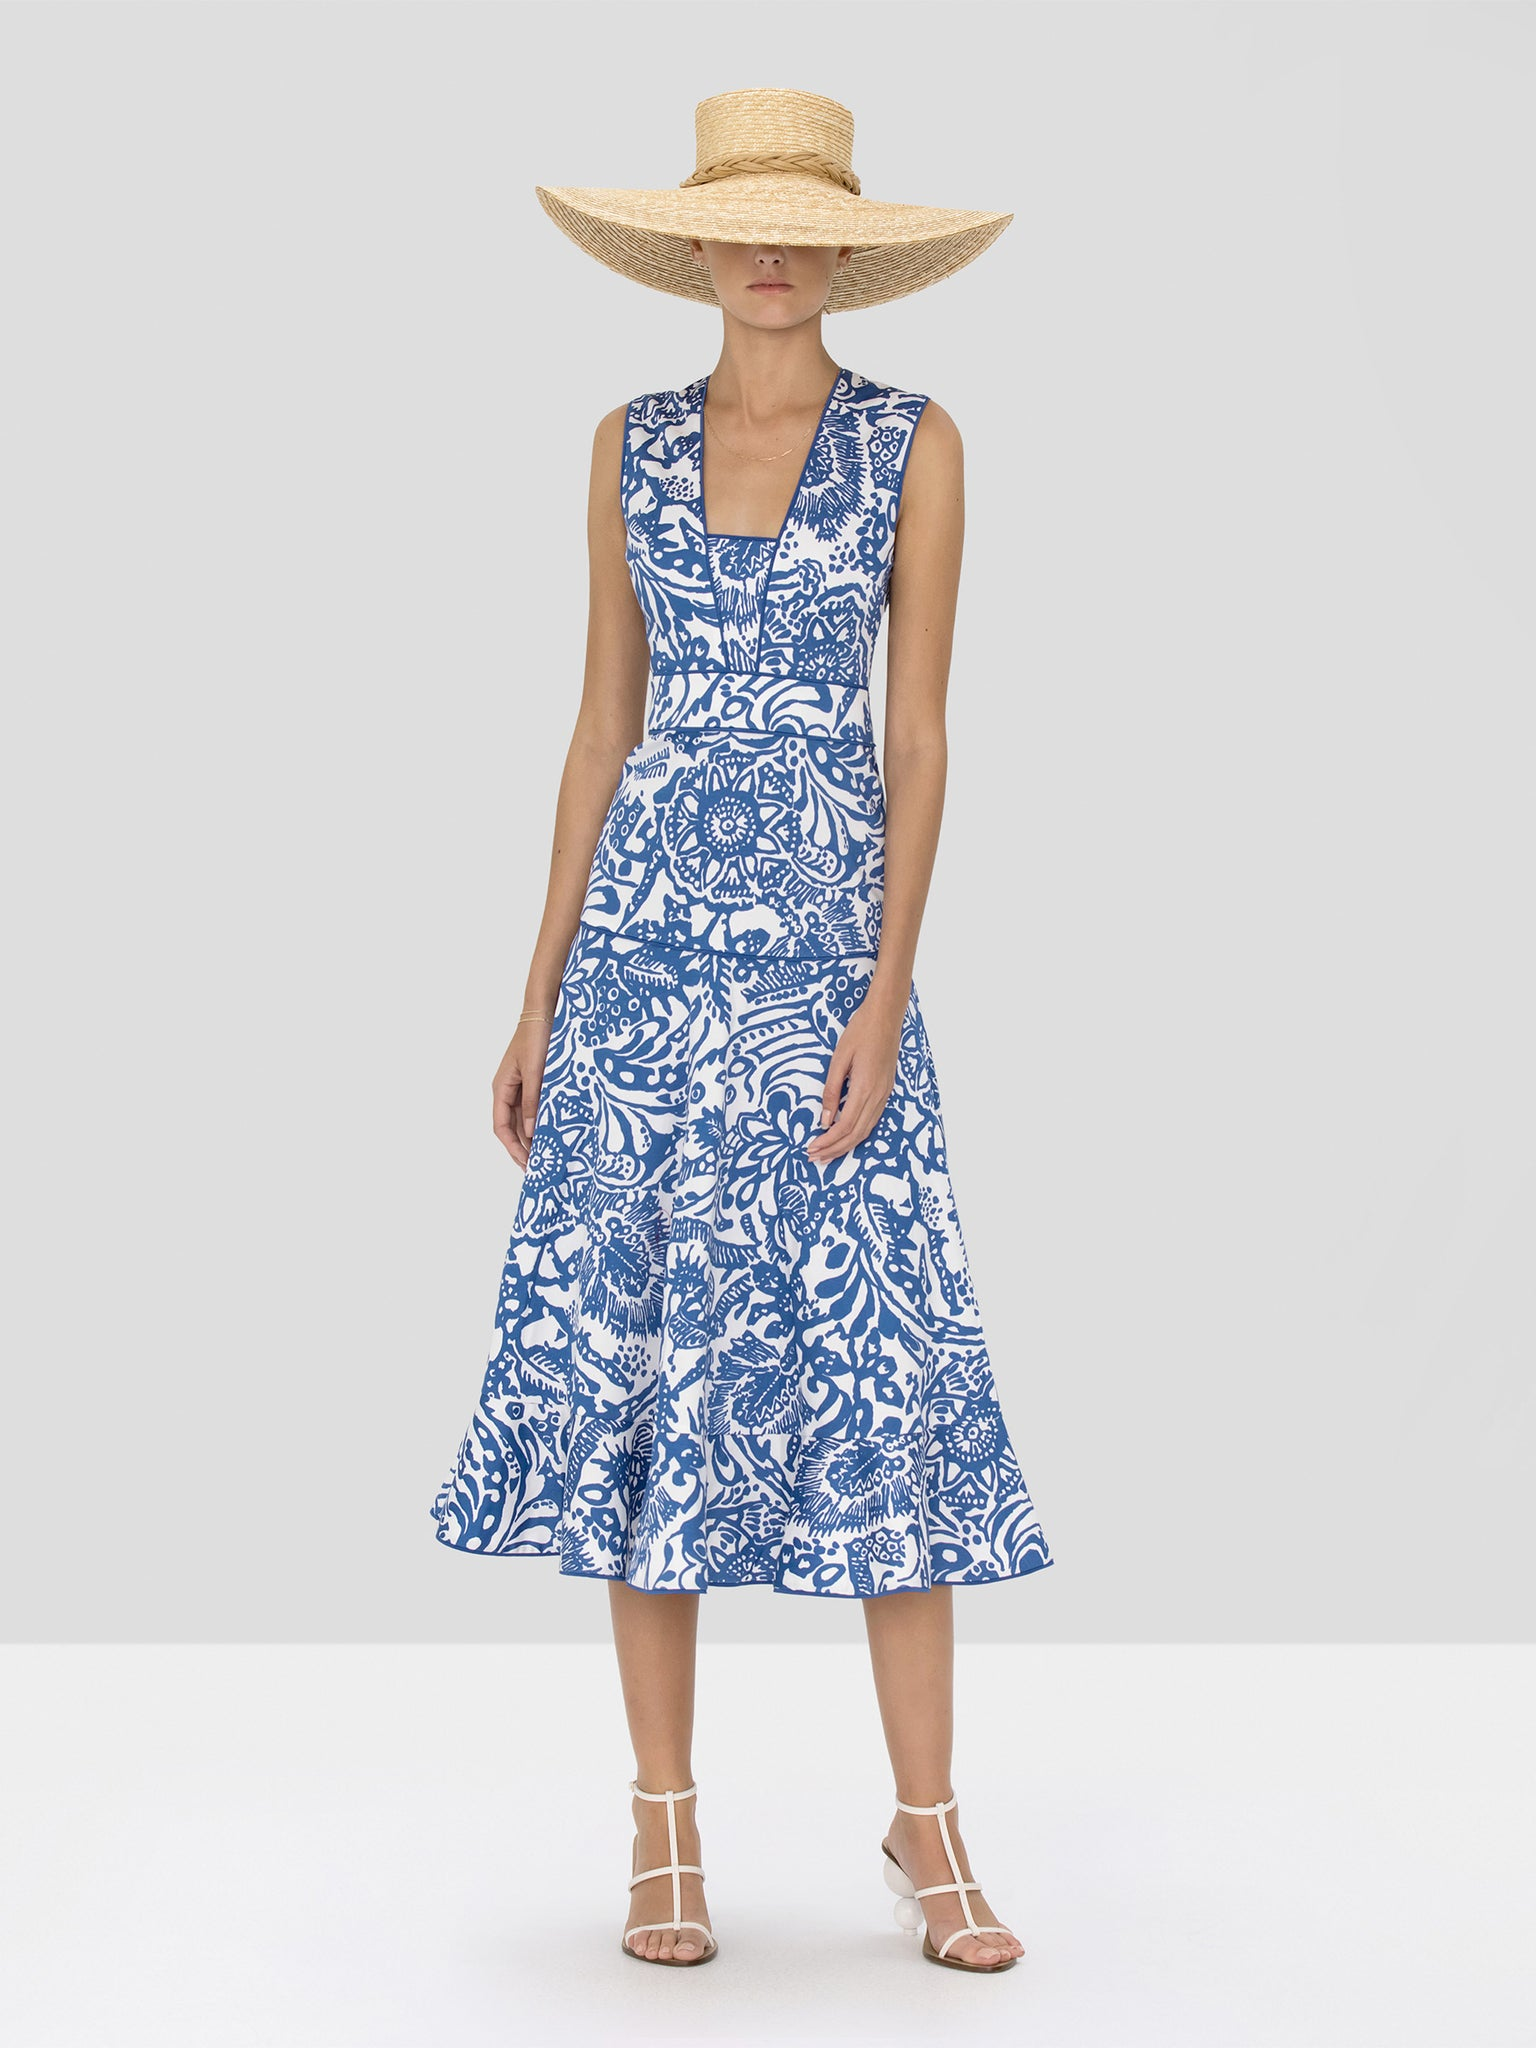 Alexis Marianna Dress in Tropical Blue from Spring Summer 2020 Collection